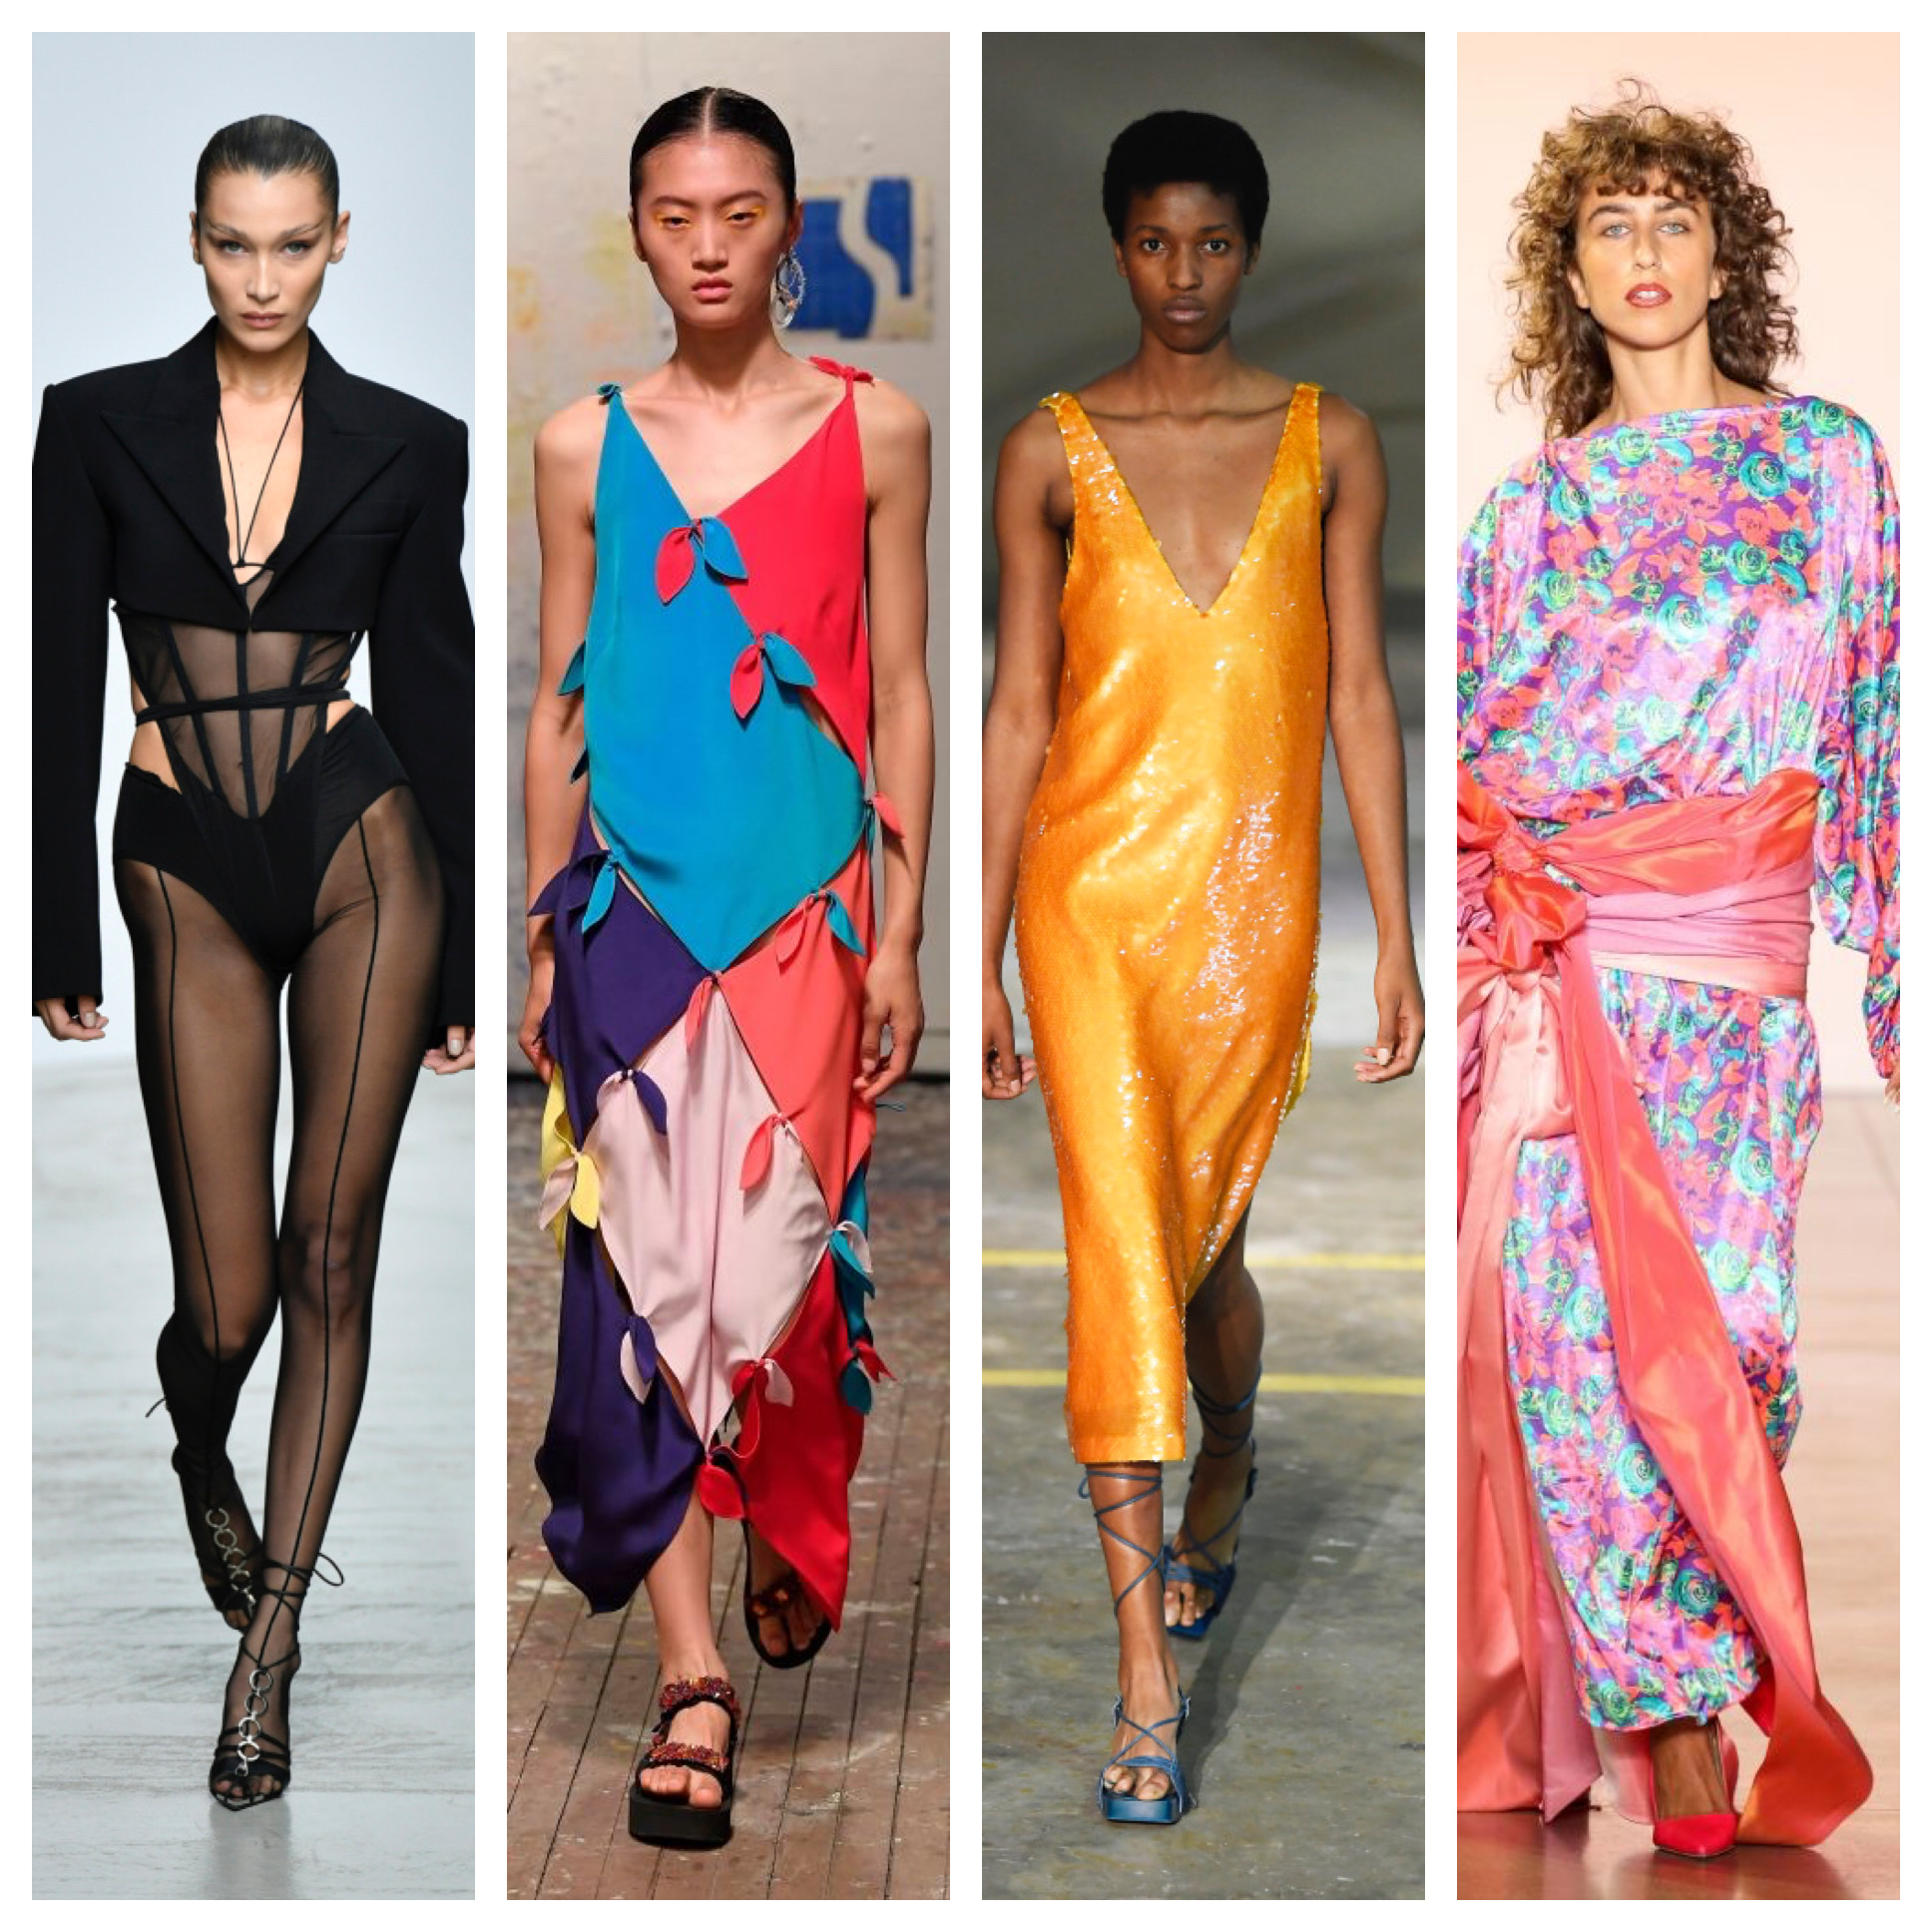 The 6 Biggest Spring 6 Fashion Trends From the Runway – WWD